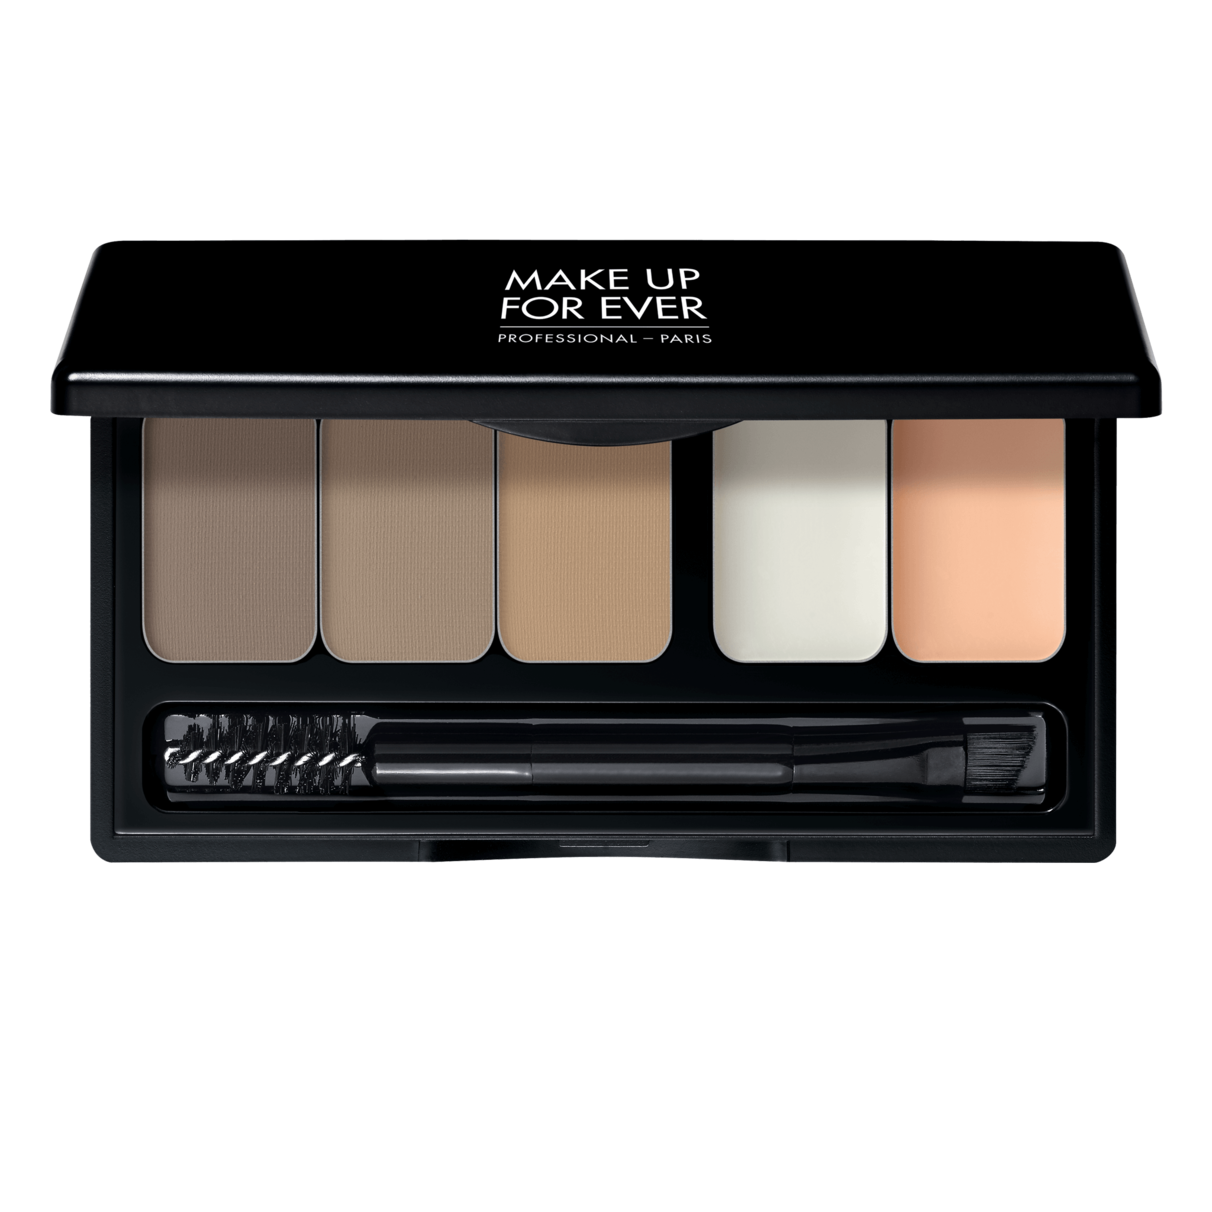 Make Up For Ever Sculpting Brow Palette  - C$30.00 - Crédit photo:  Sephora